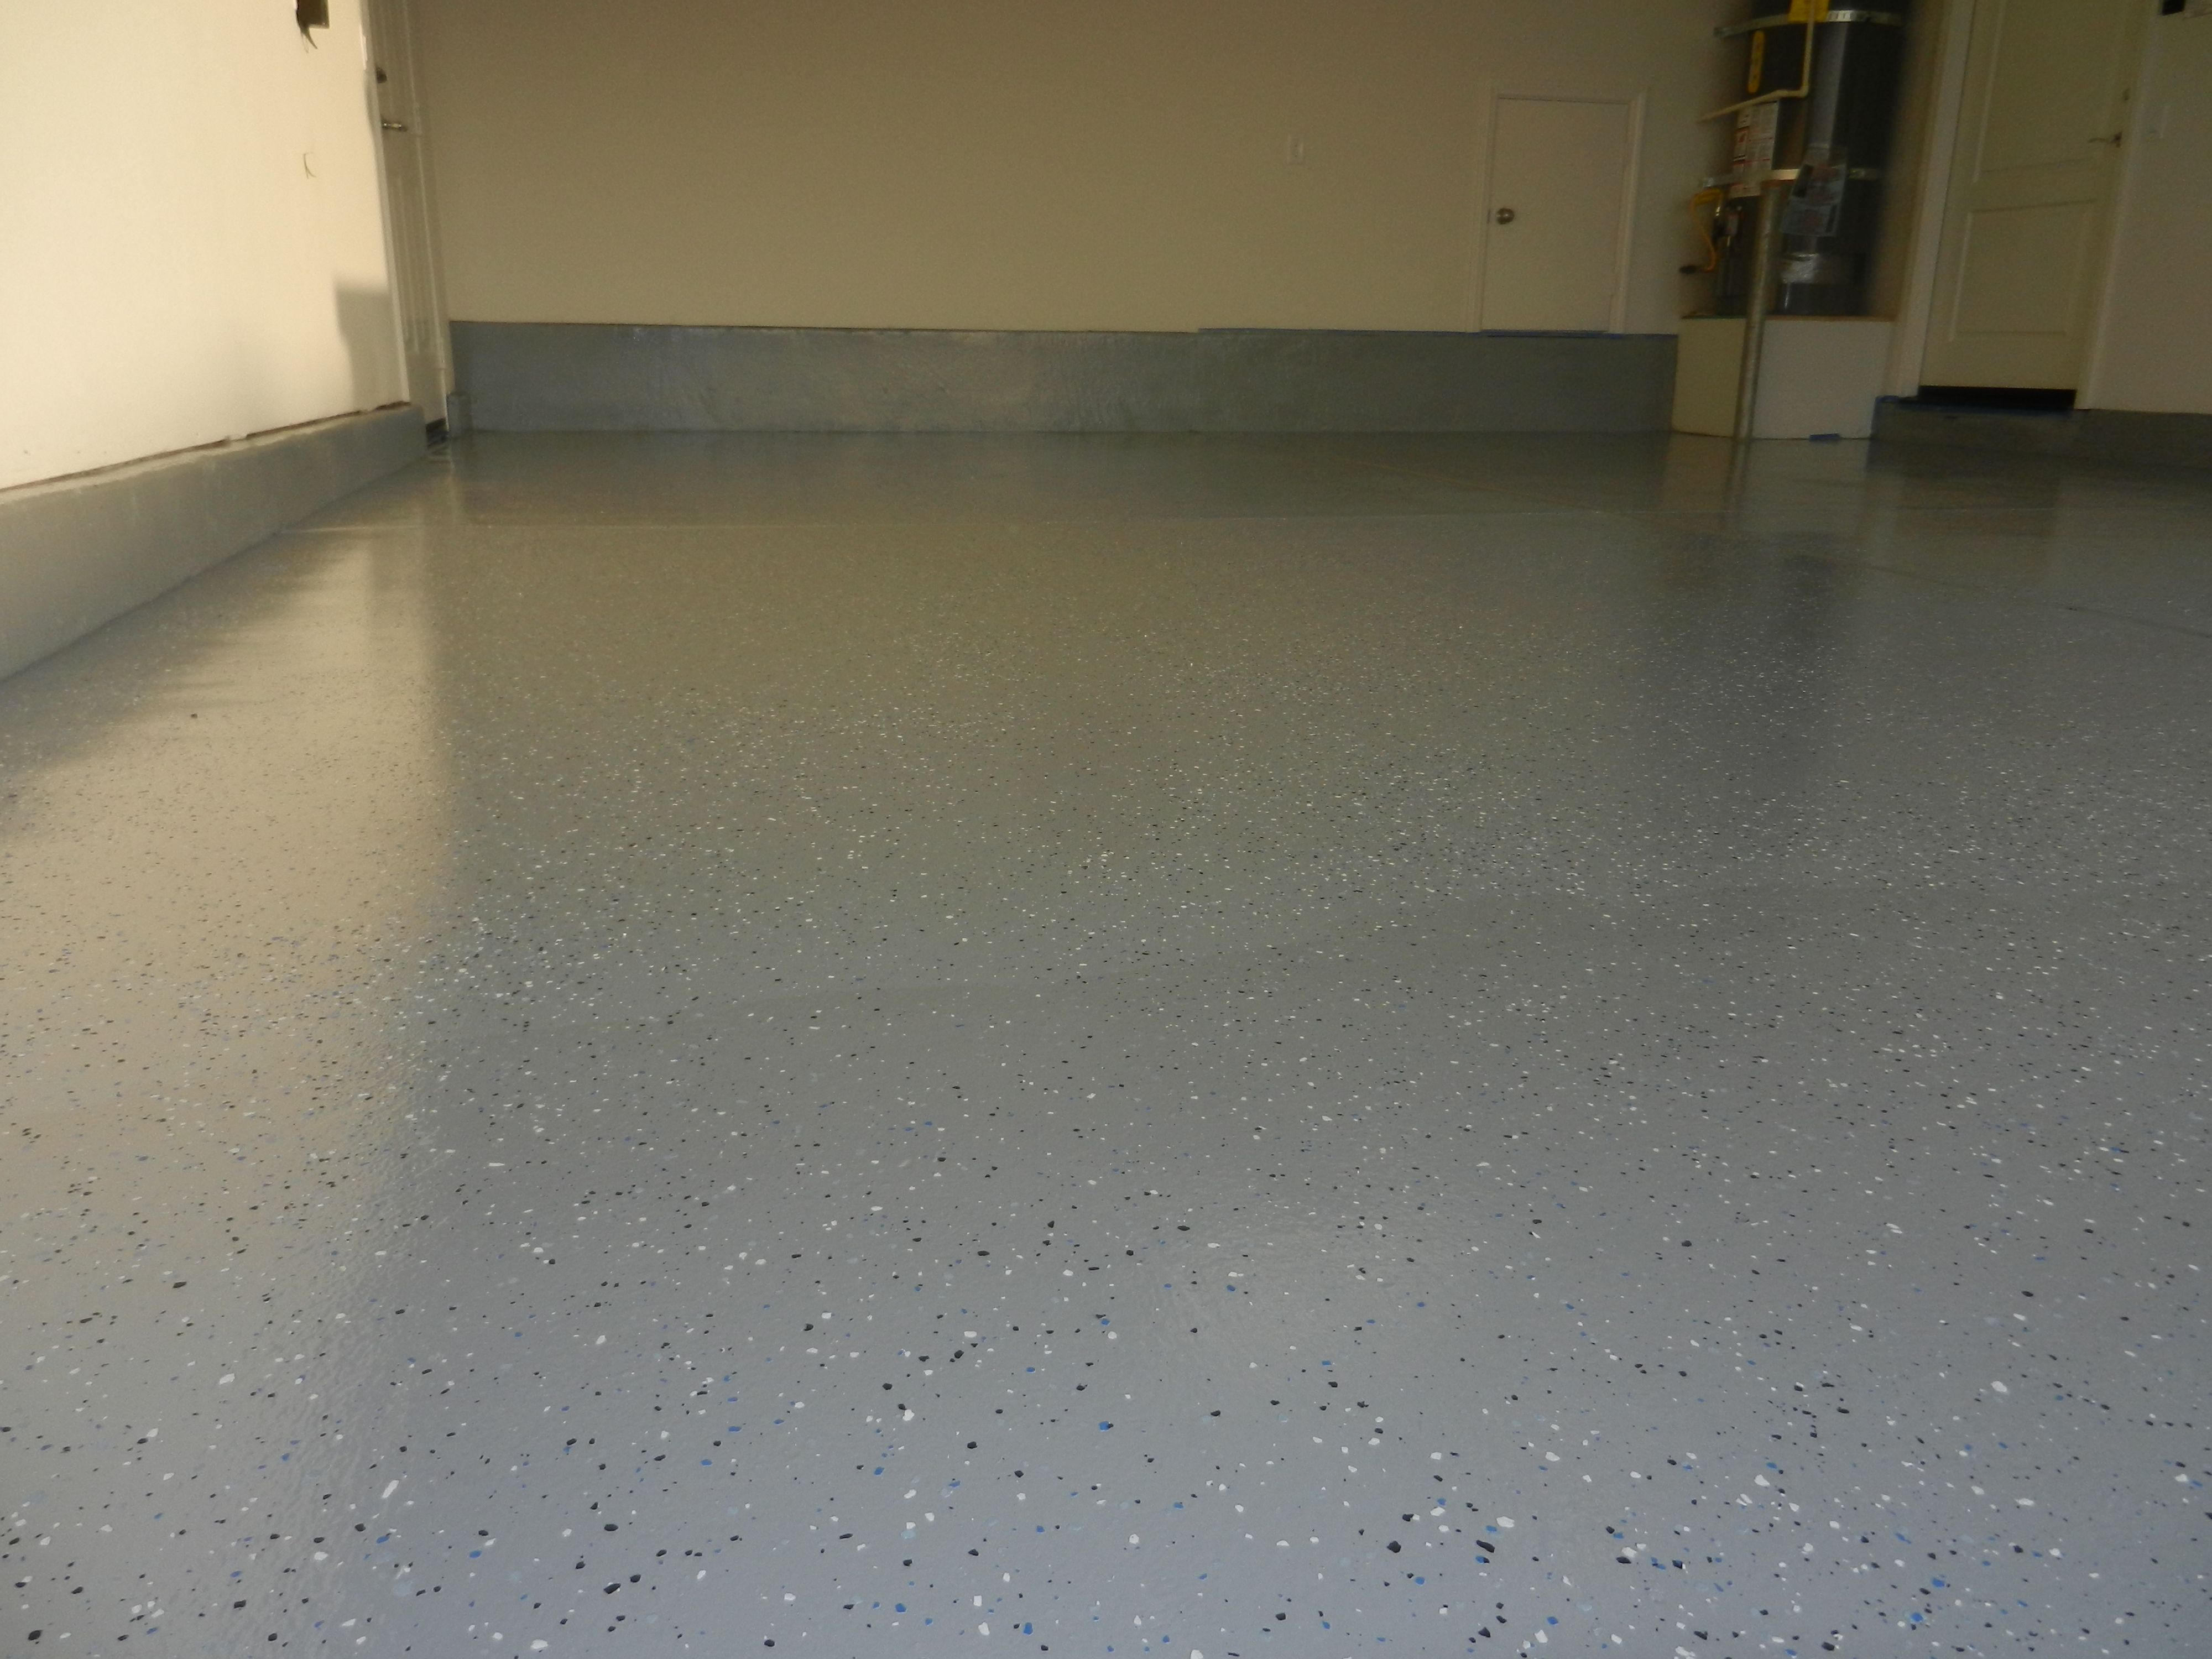 coatings about at more learn paint flooring sealer garage to mats floor best options resource epoxy floors how s pin look let repair your and a ideas tiles